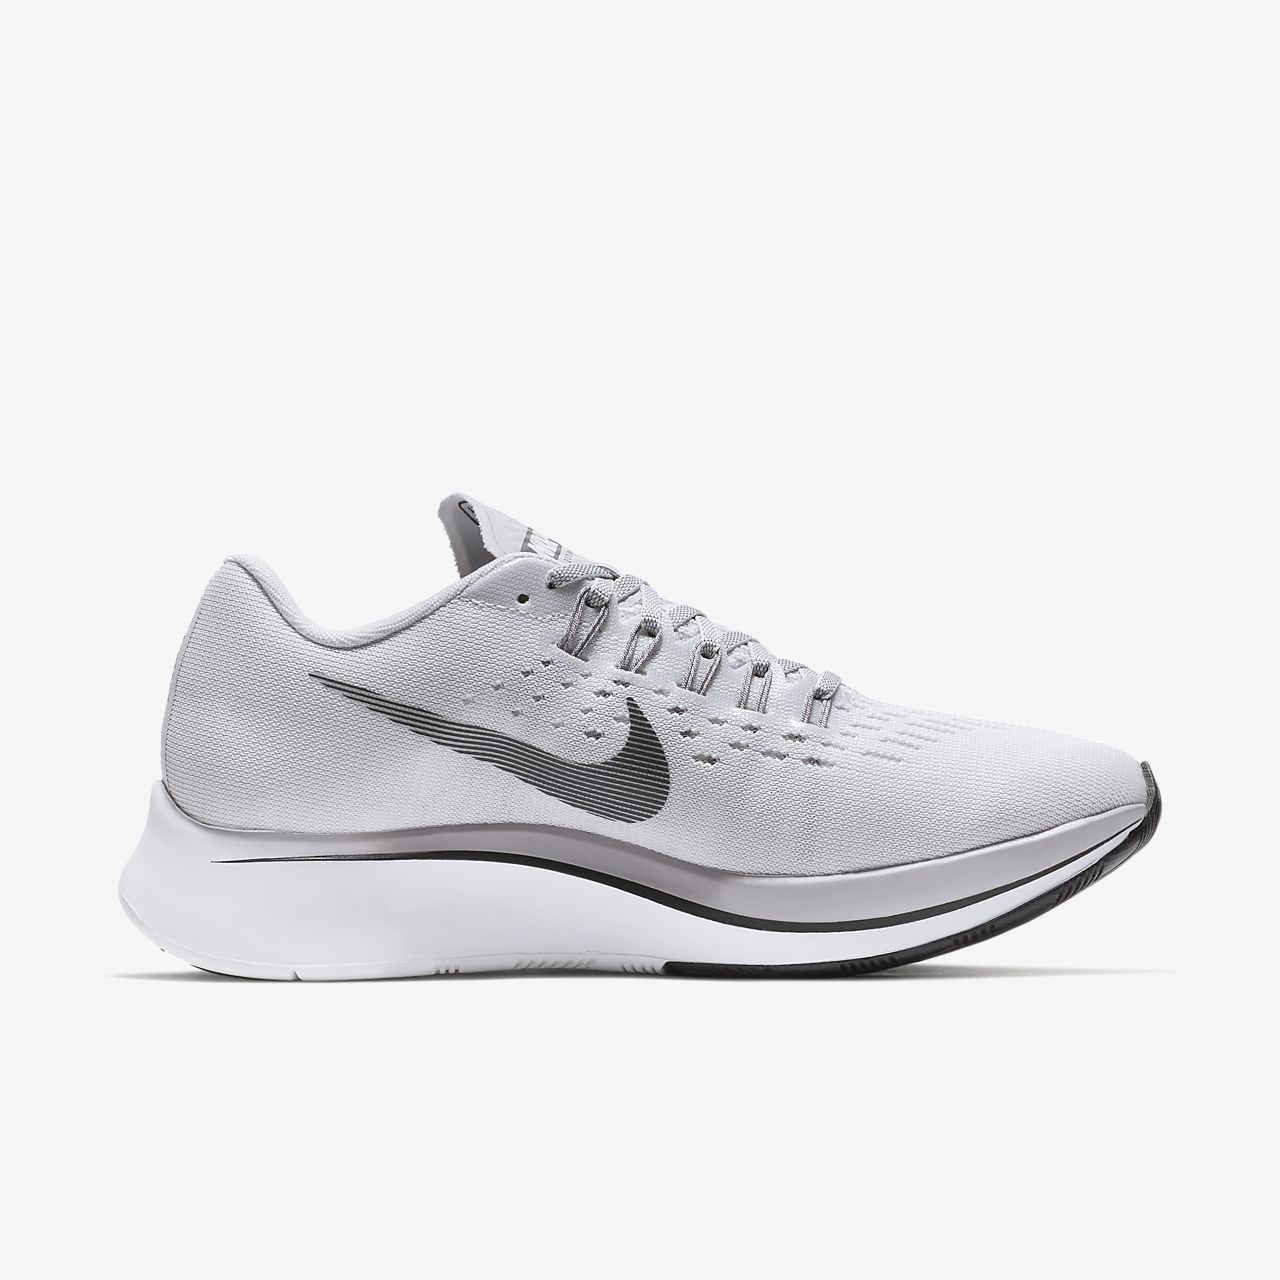 Nike Zoom Fly Women's Running Shoes Black/Grey/White bU5224N